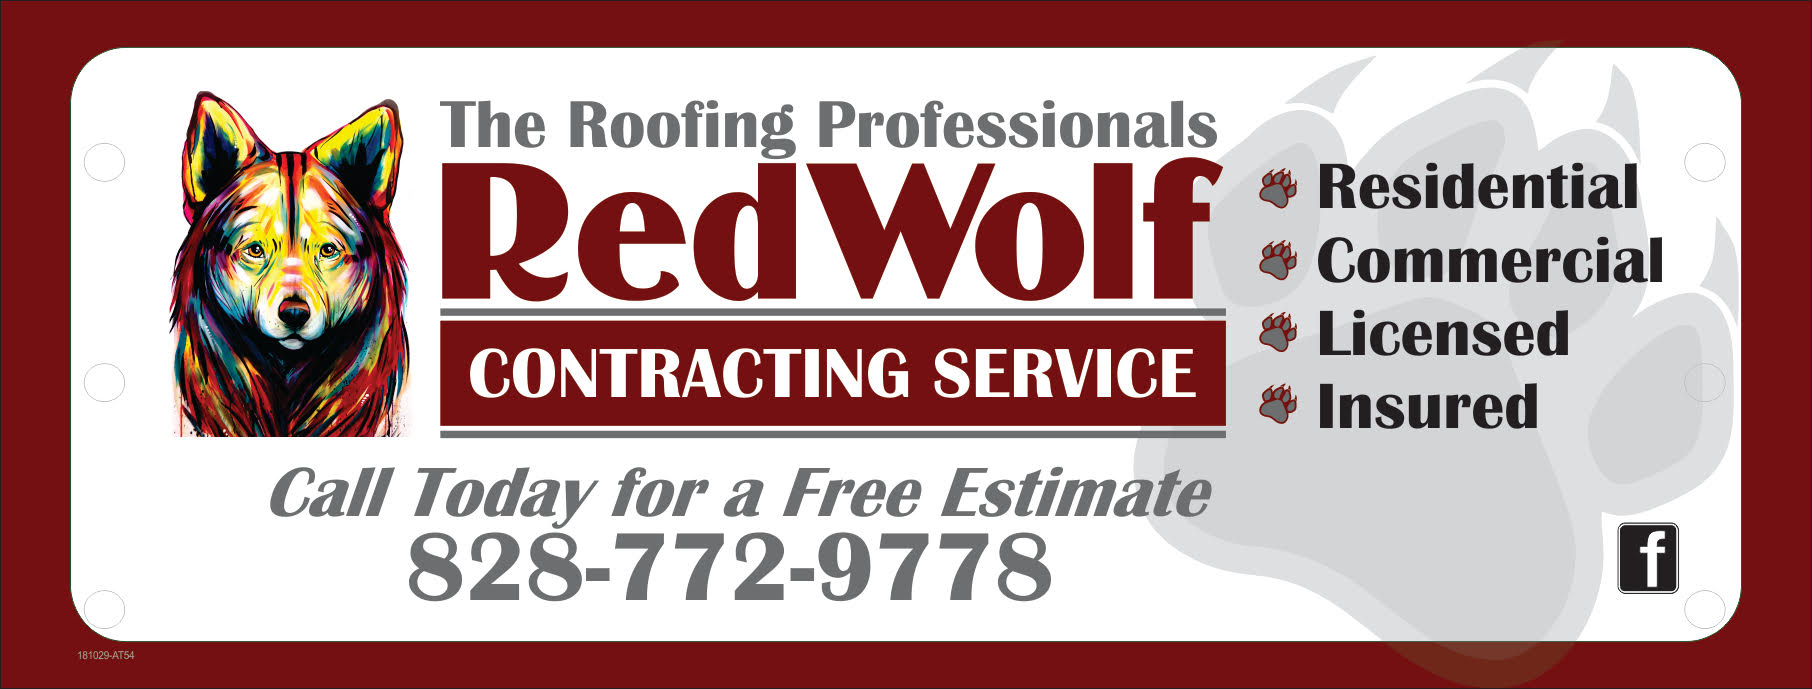 Need roofing repairs or a new roof?  Matt and the team at RedWolf Contracting Service are the people to call!  With free evaluations and estimates, you have nothing to lose!  Give Matt a call (828)772-9778 to set up your appointment today or visit their website  nc-roofers.com